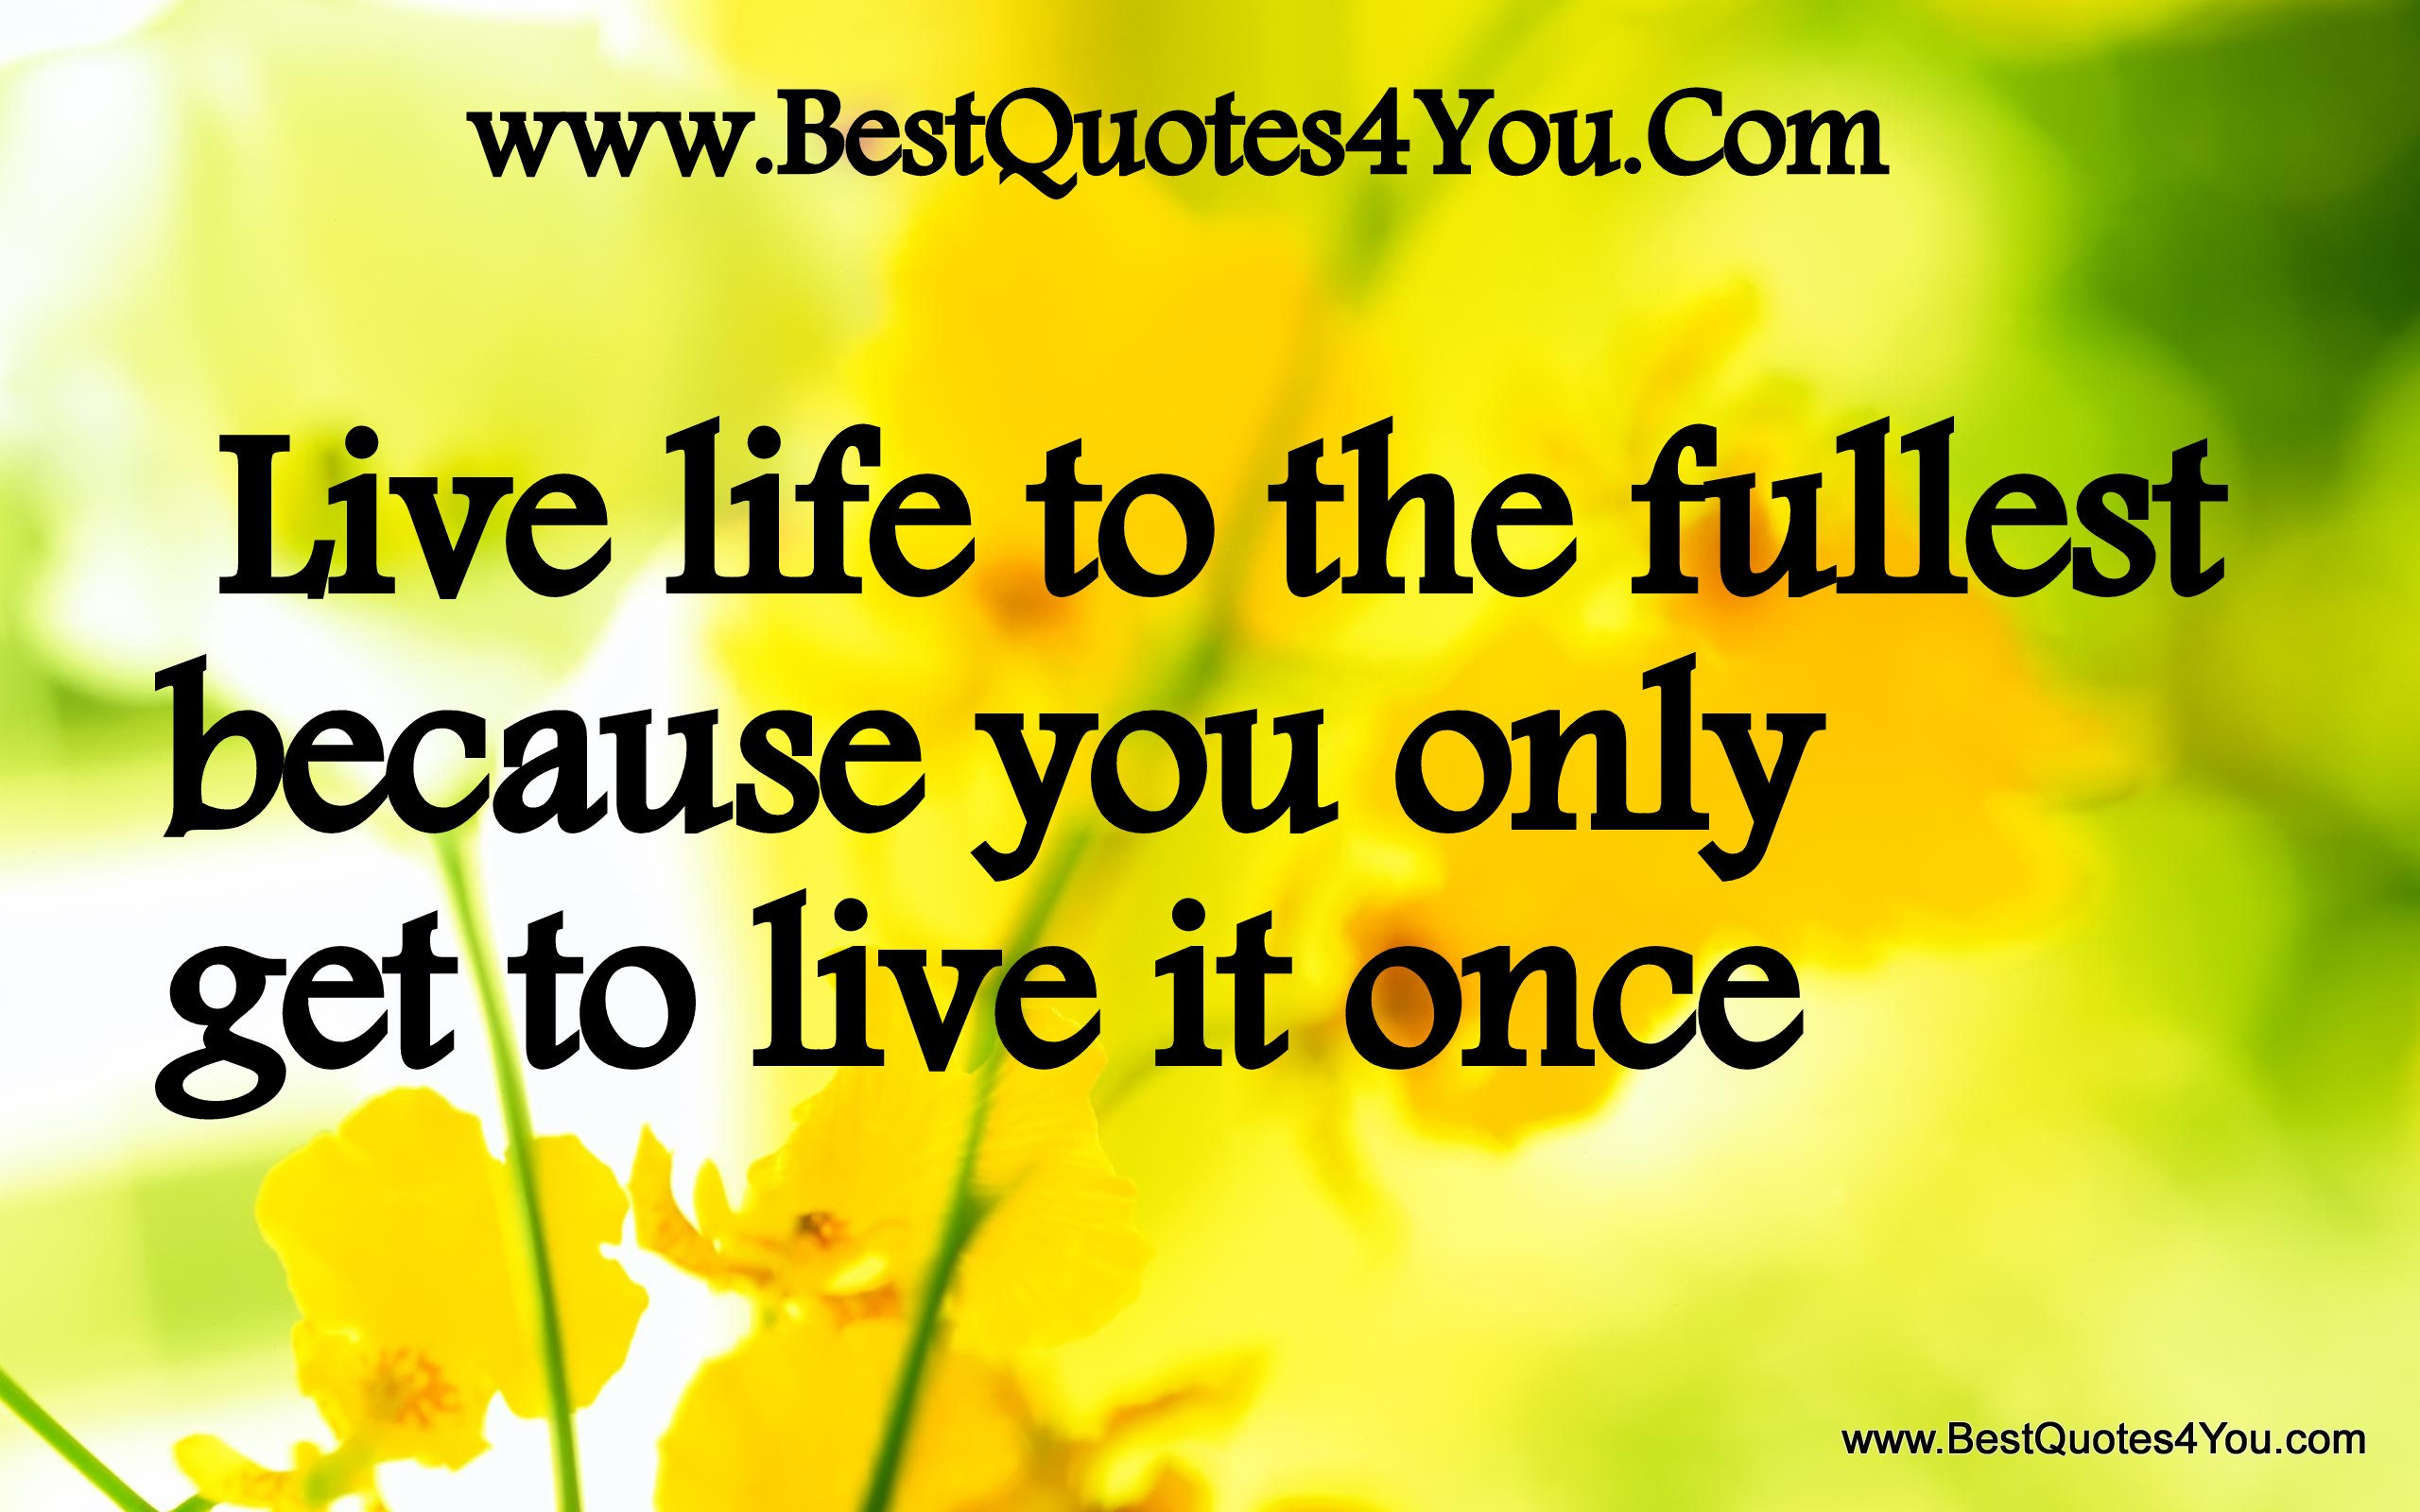 famous quotes about 39 live life to the fullest